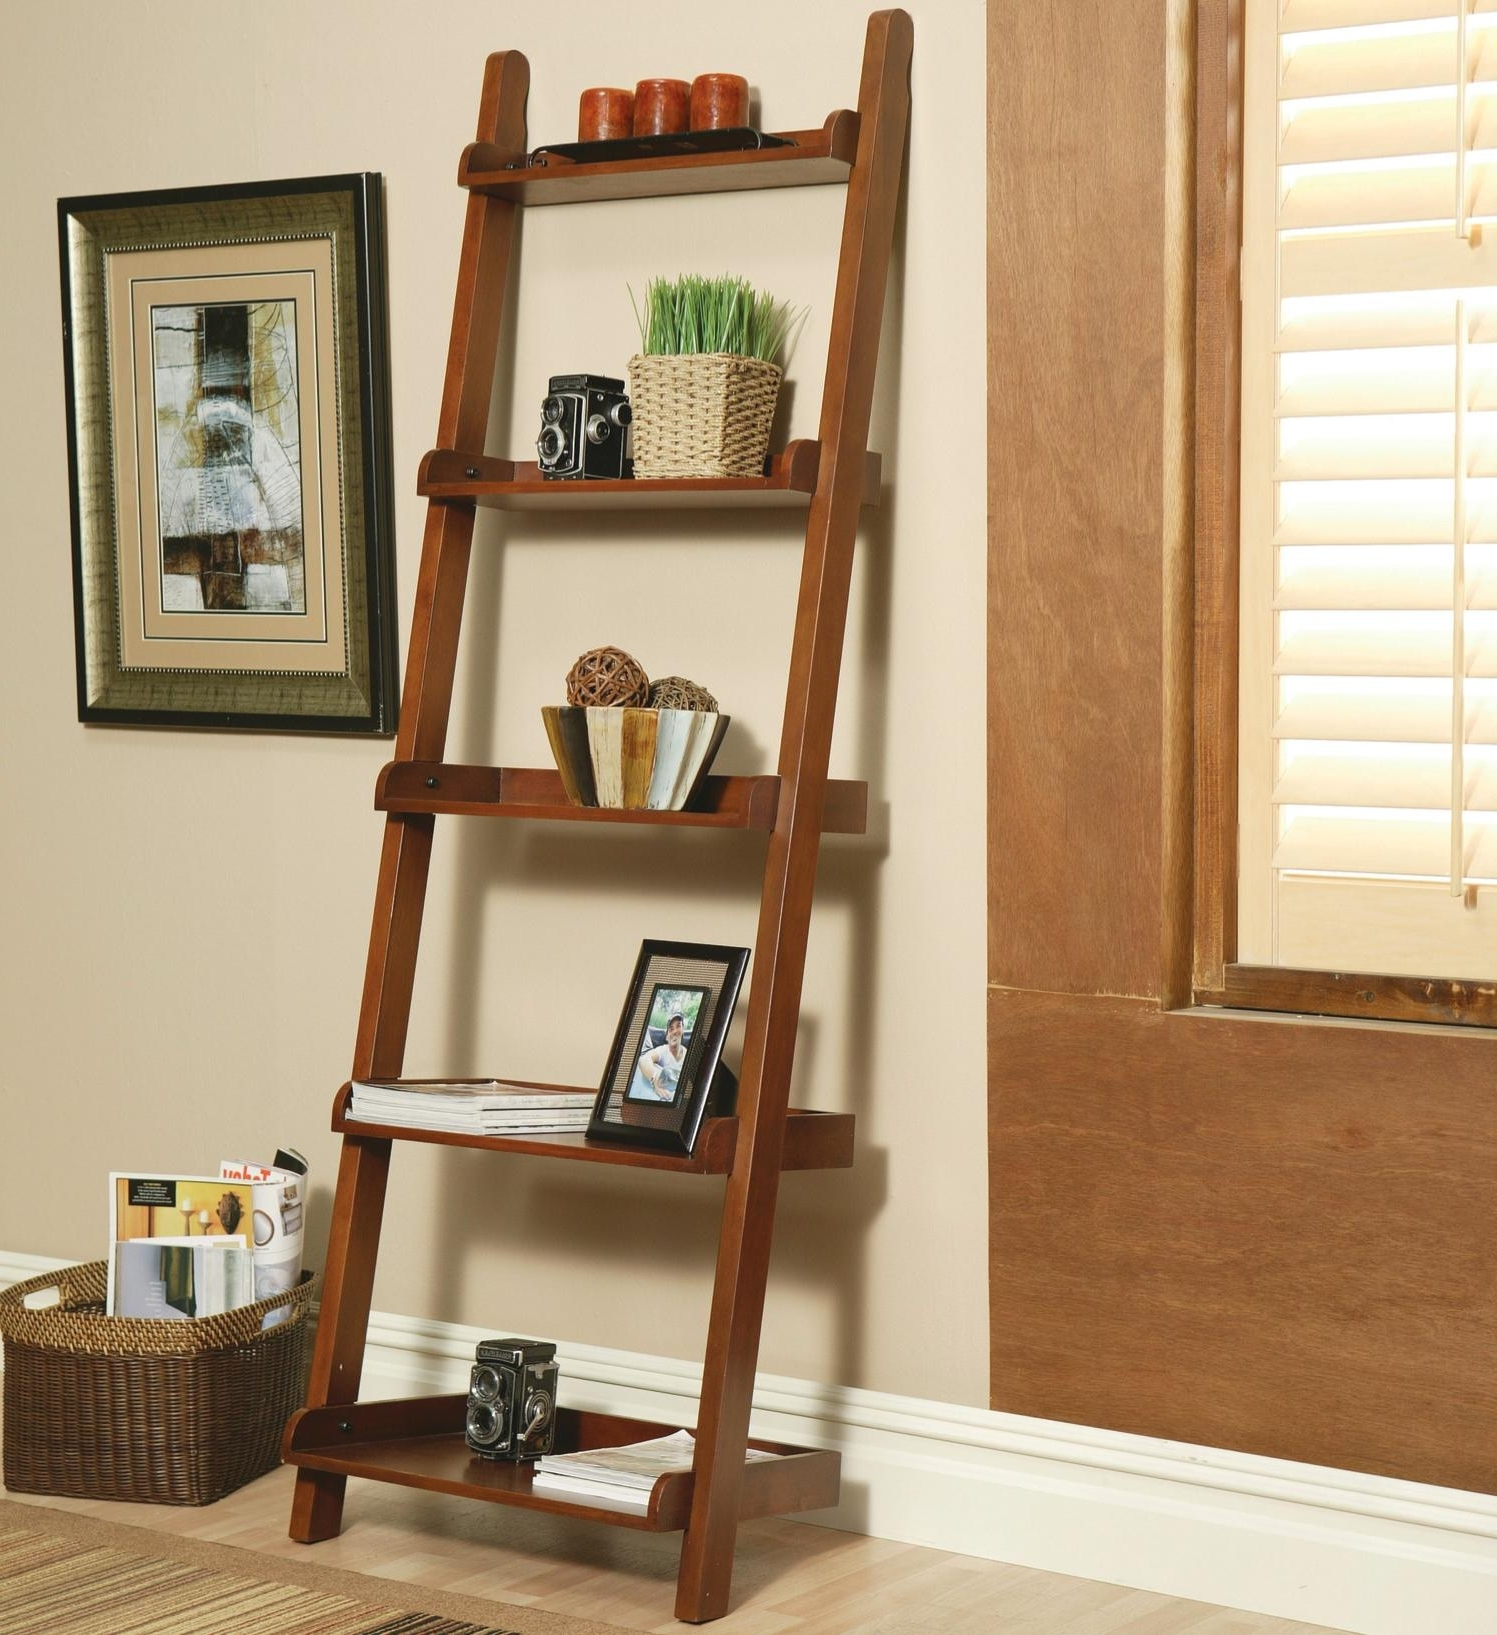 Most Recently Released Tilted Shelf Bookcase Shelves Bookcases Beautiful Photo Concept Throughout Leaning Shelf Bookcases (View 9 of 15)